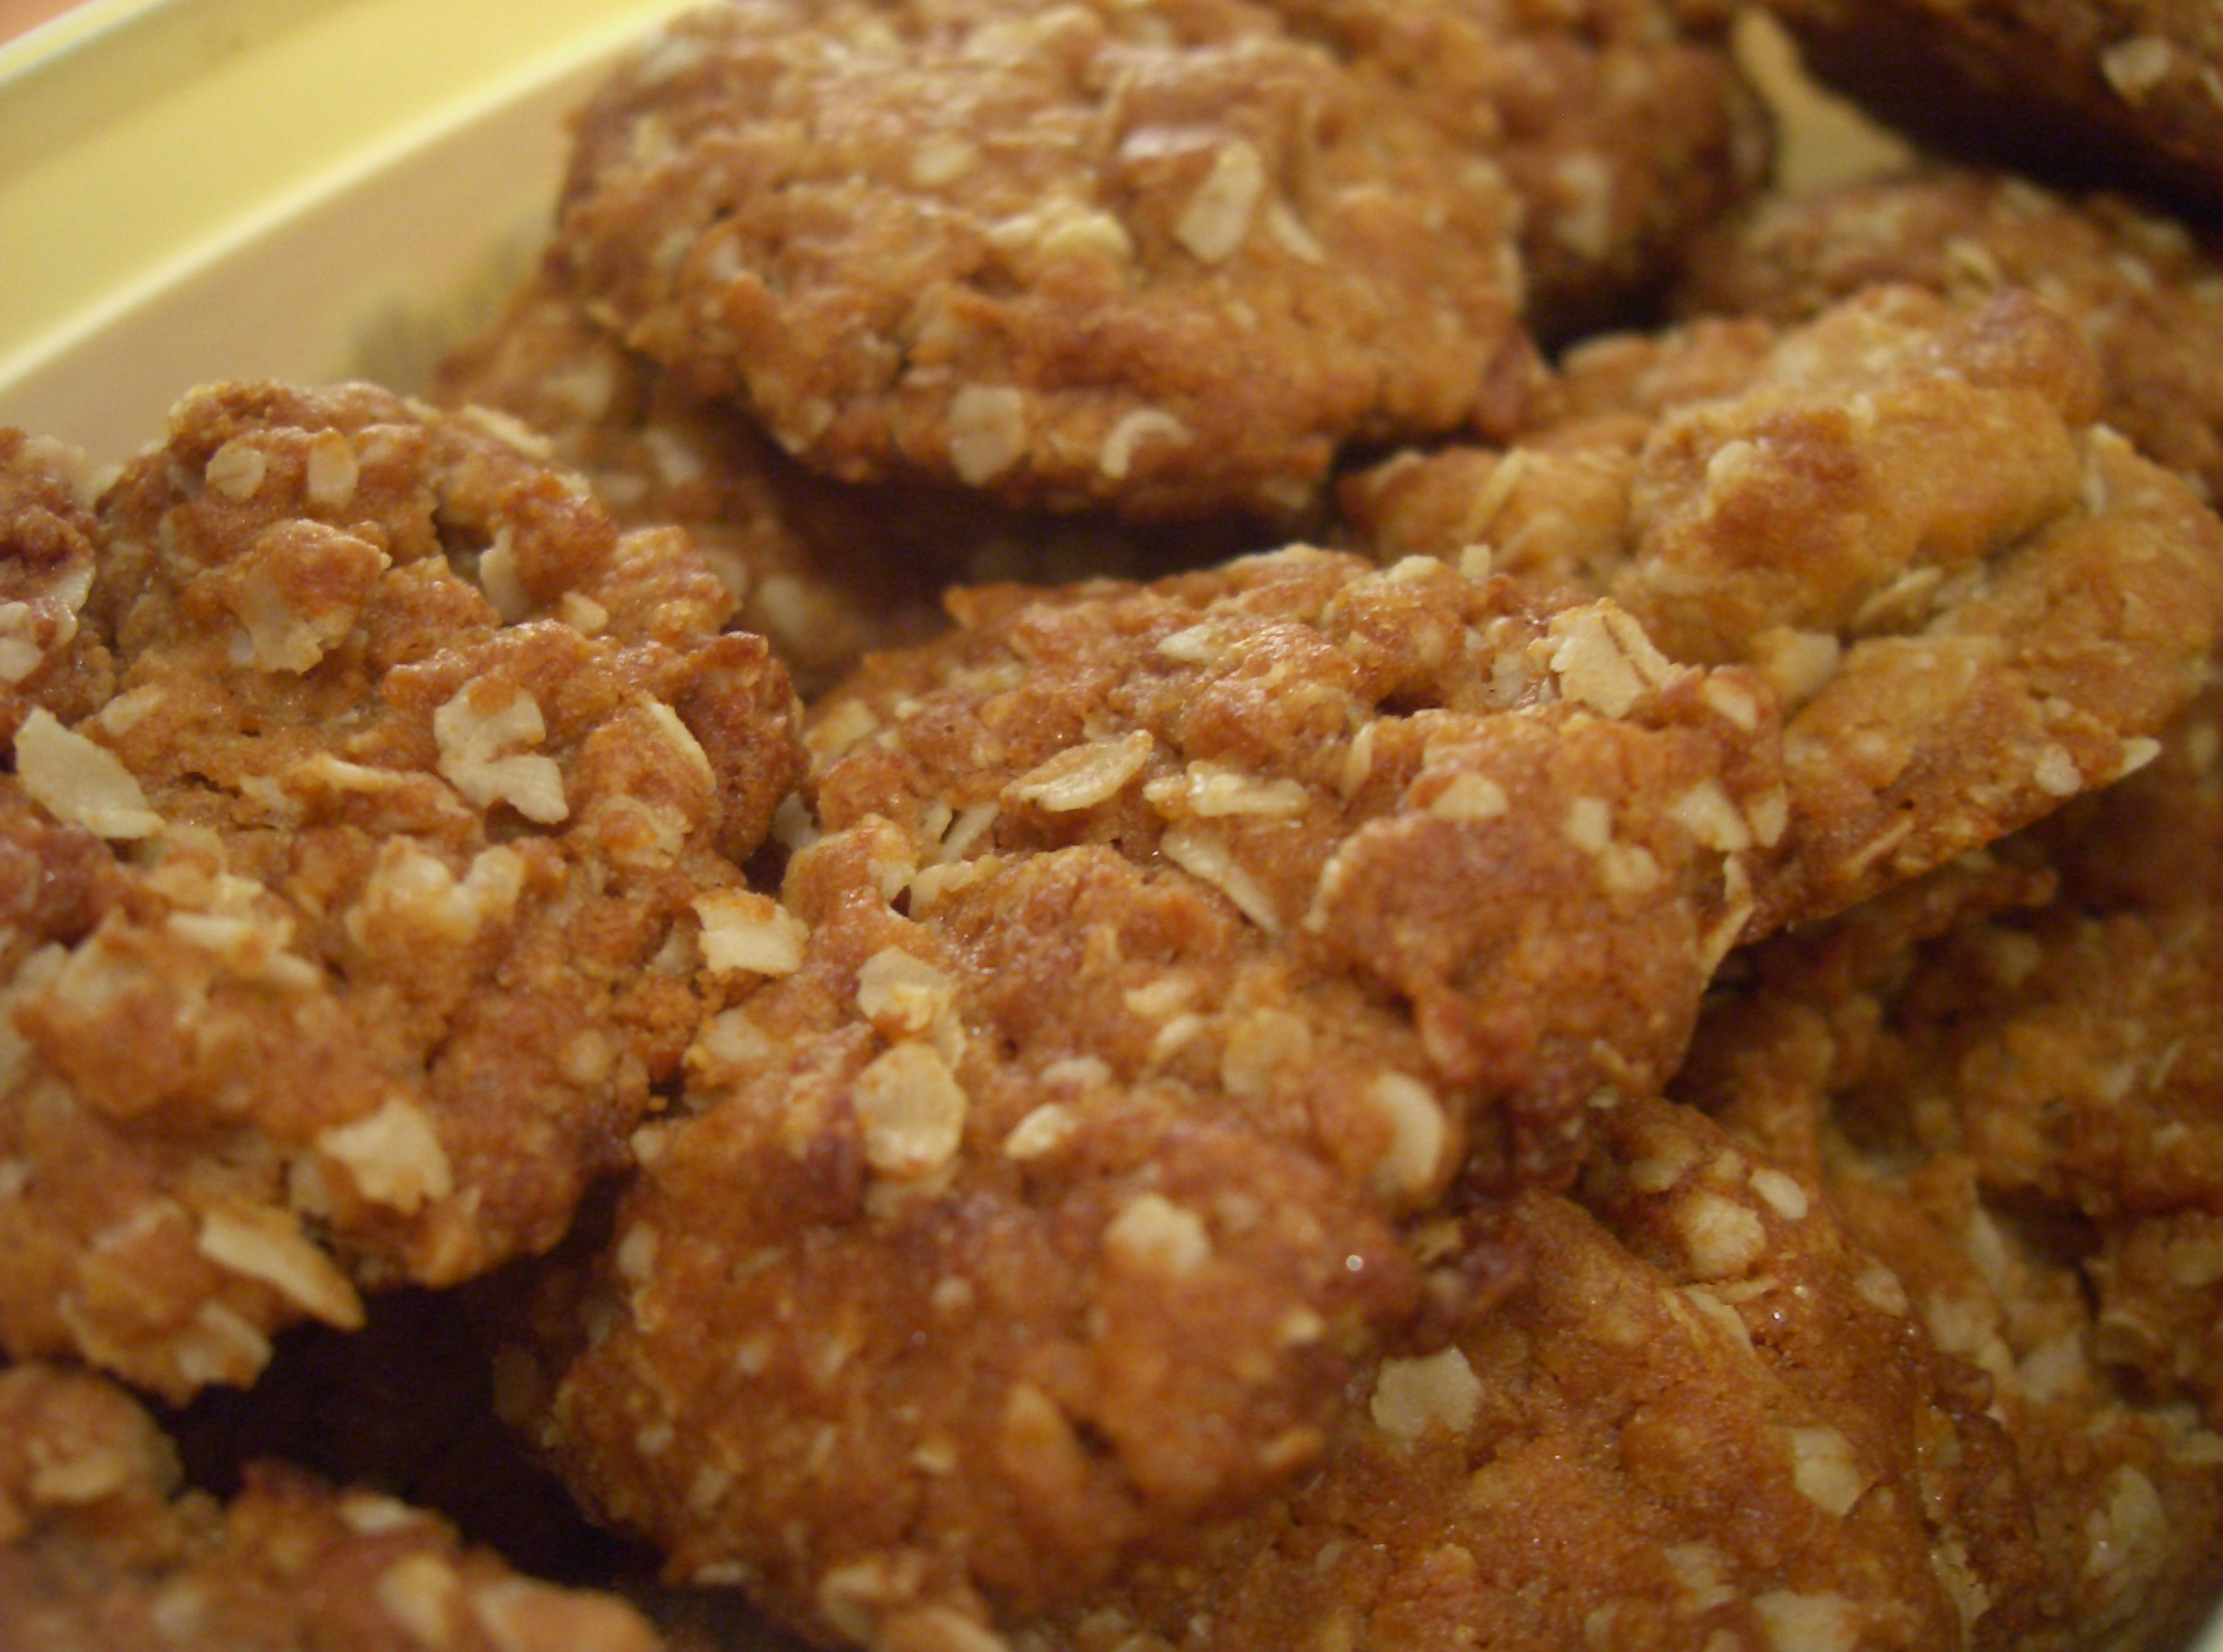 File:ANZAC biscuits.JPG - Wikipedia, the free encyclopedia